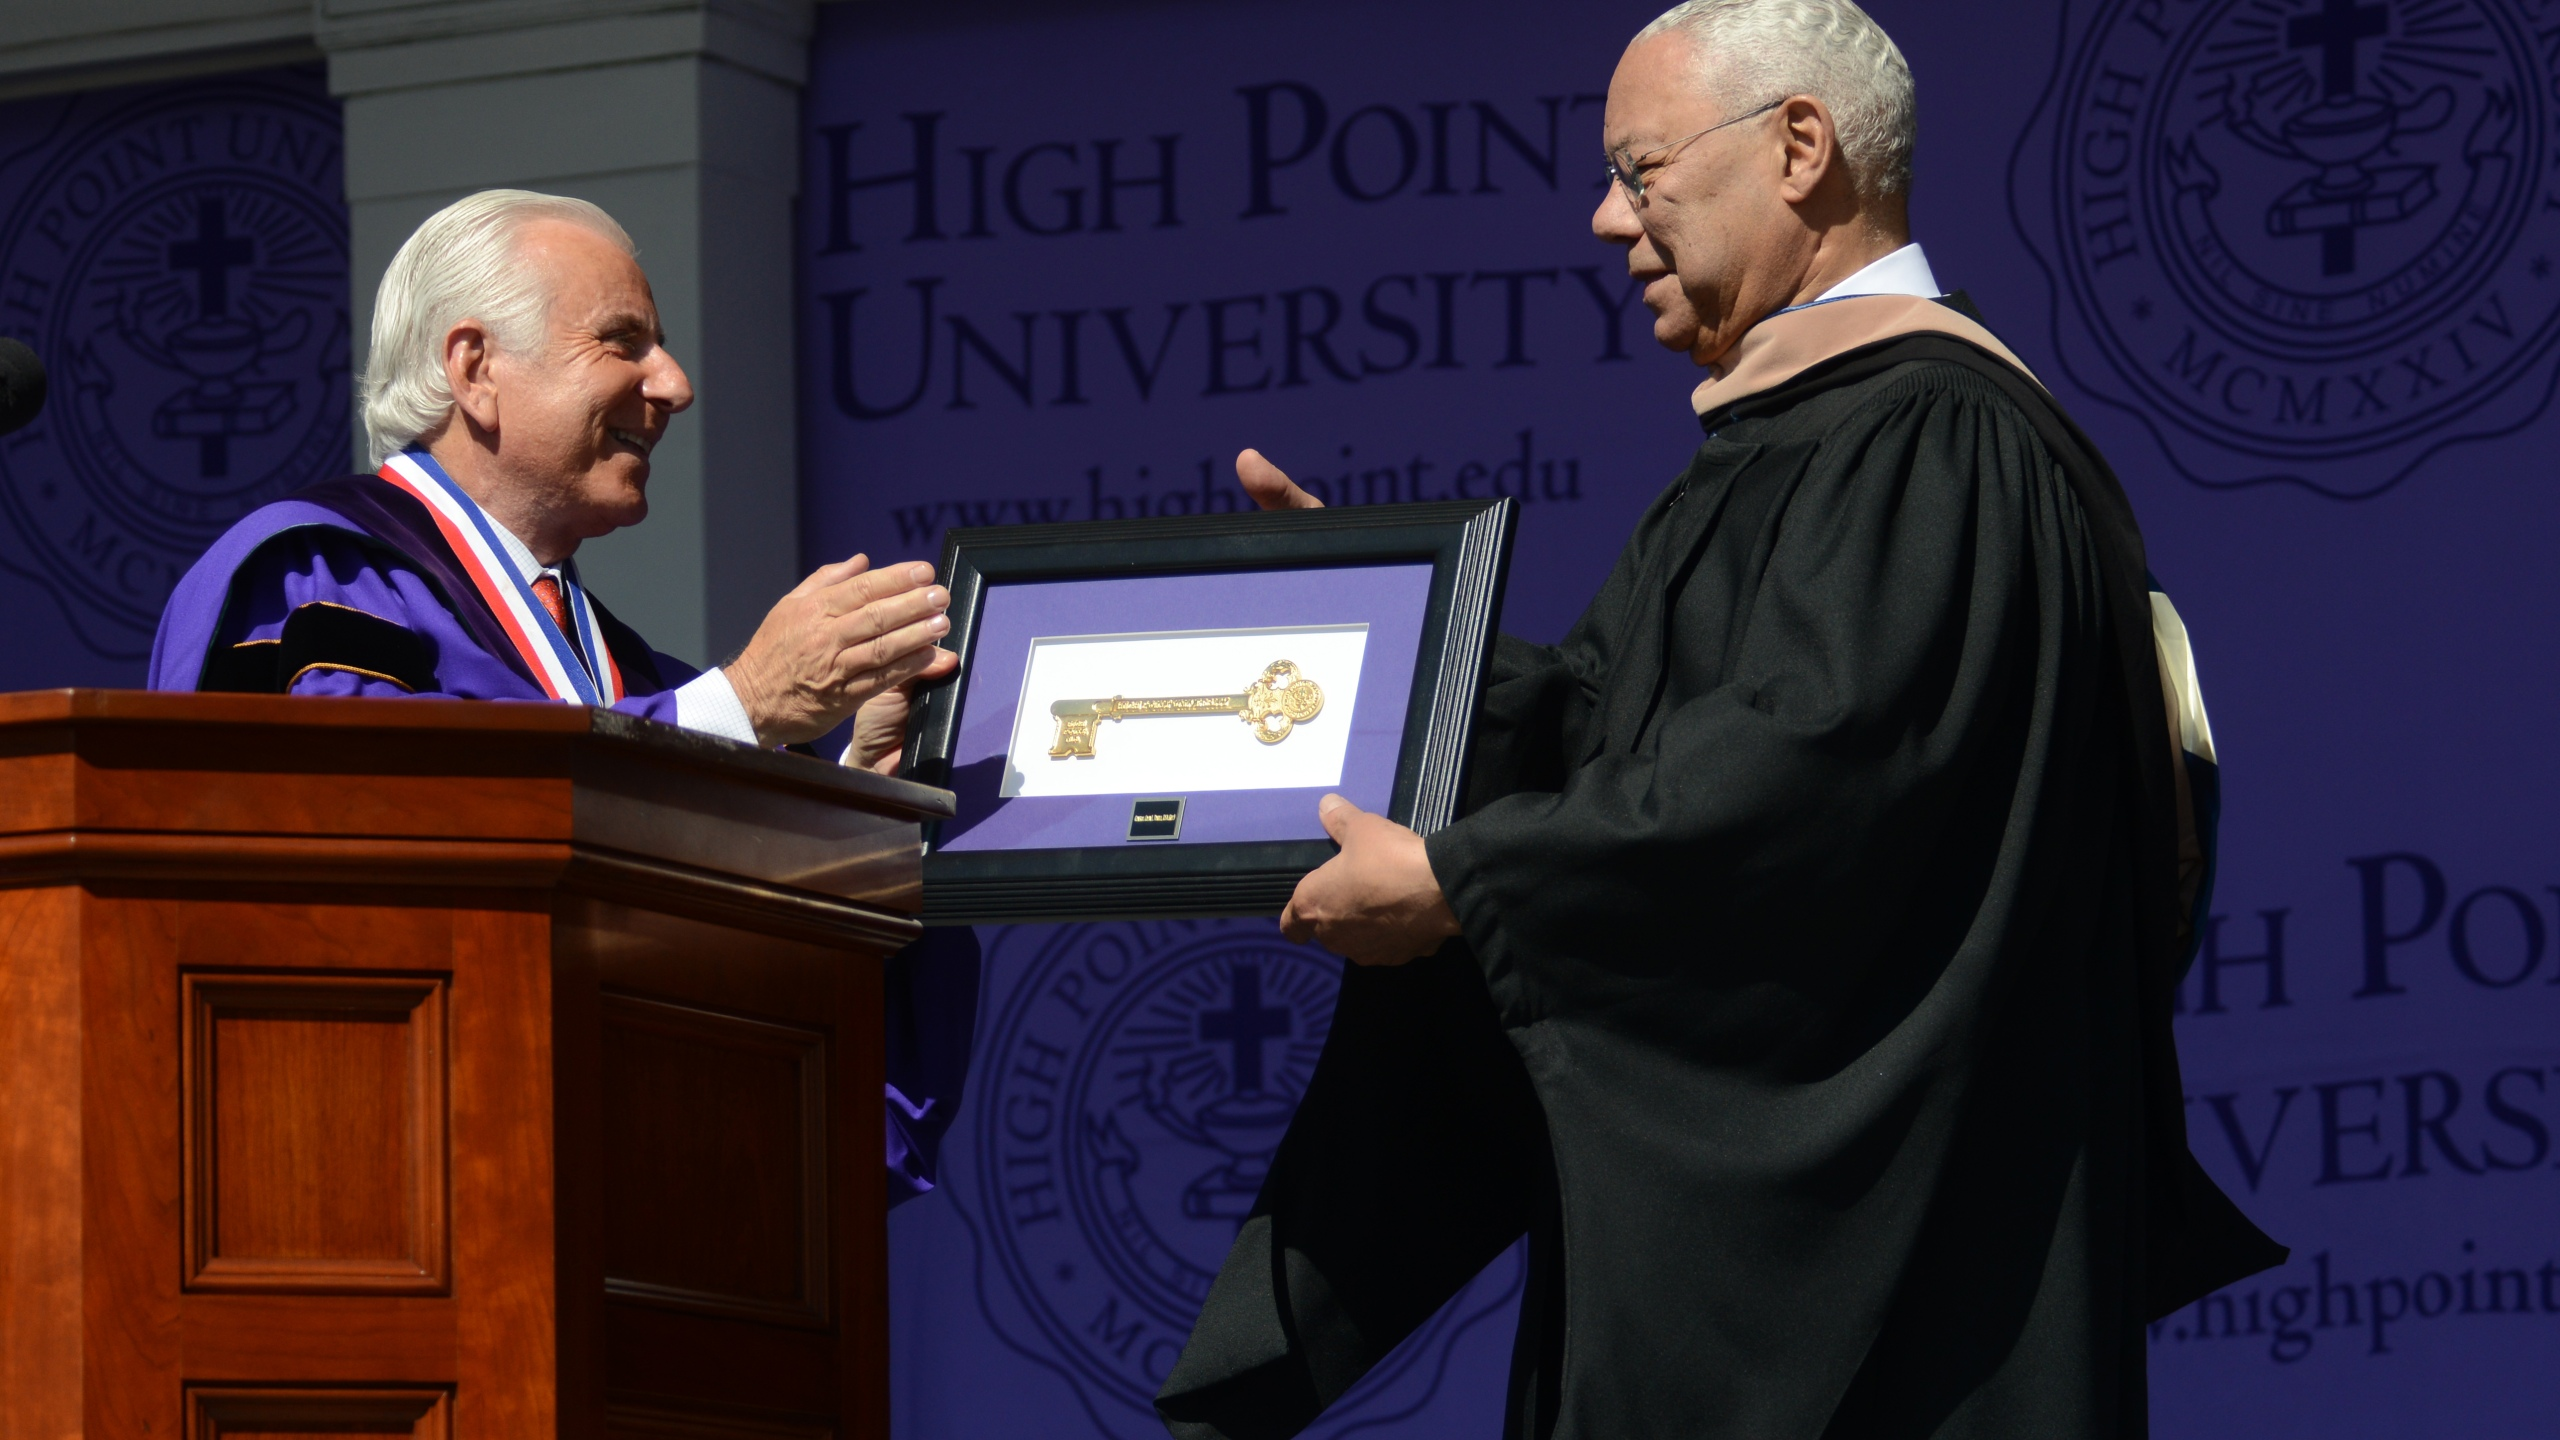 Nido Qubein (left) and Colin Powell (right)(Courtesy of High Point University)